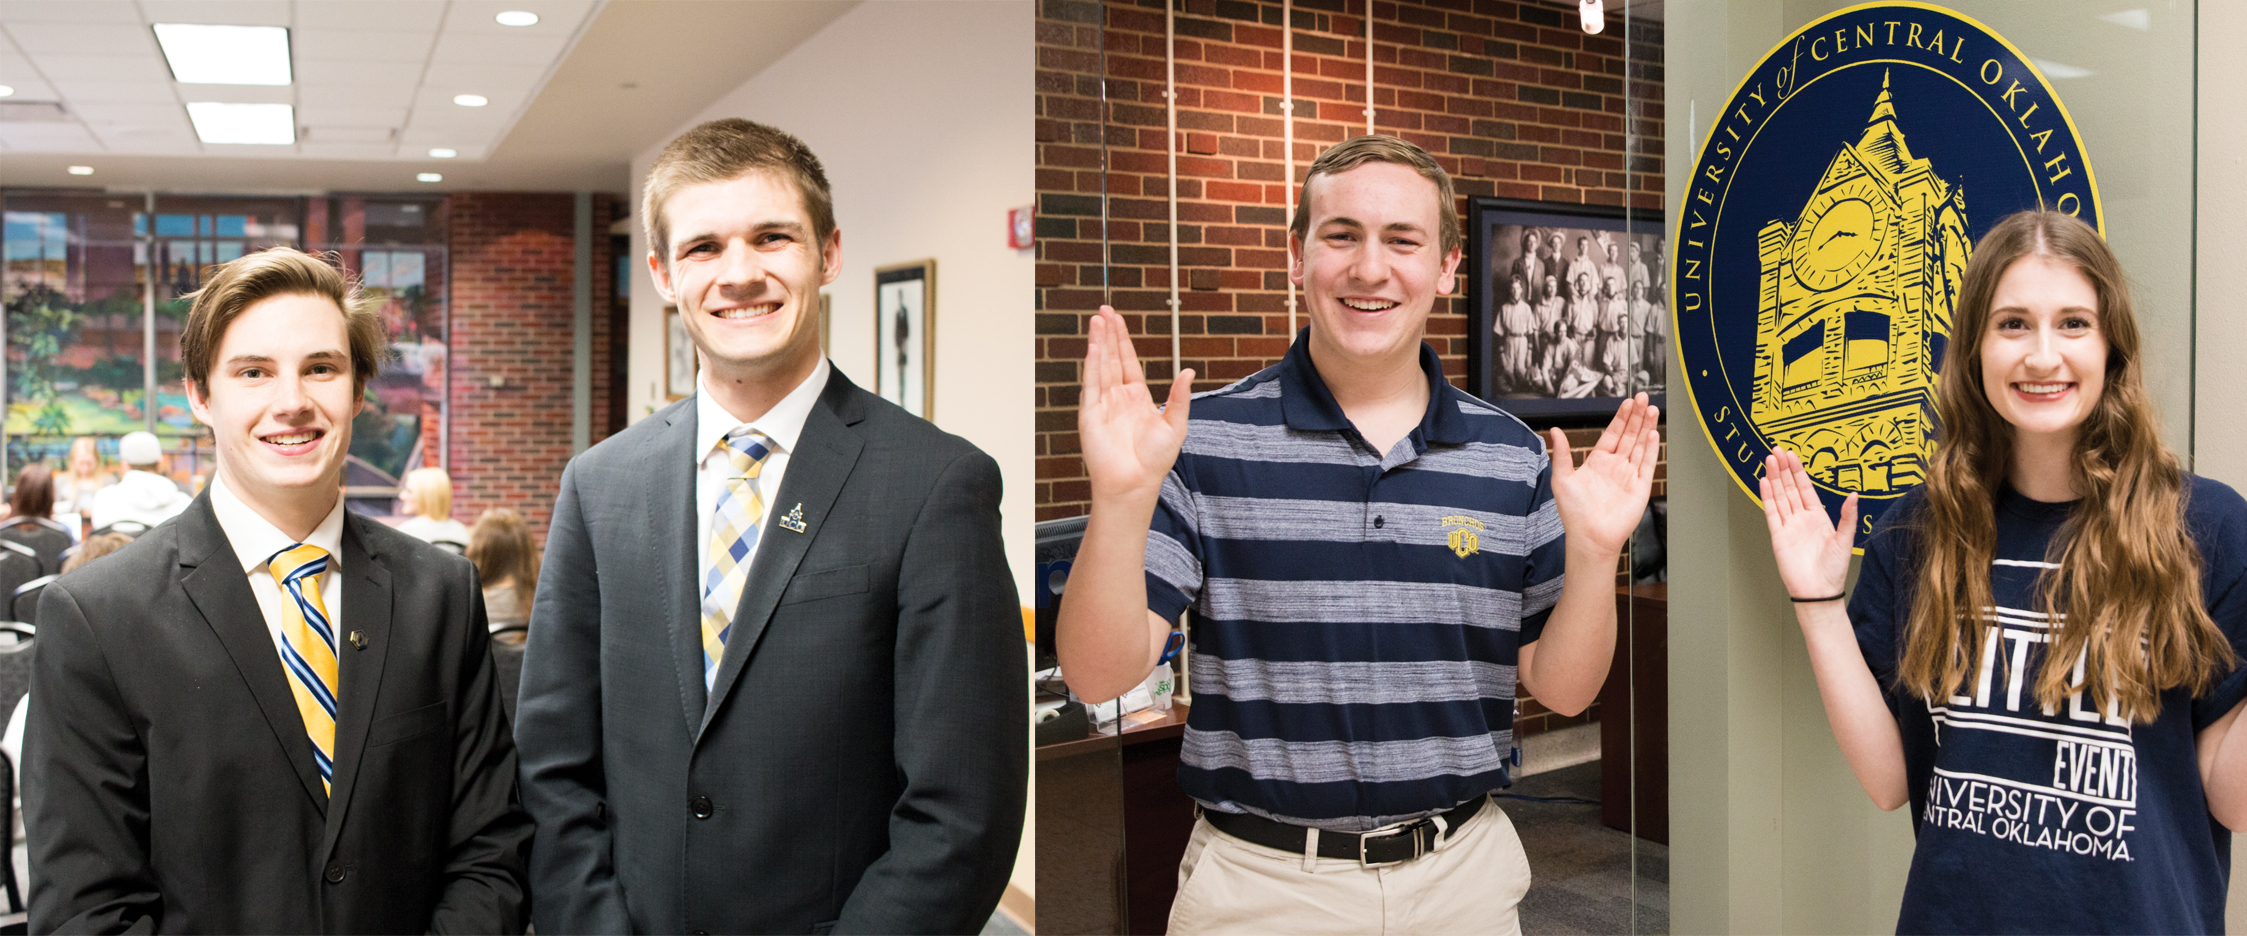 Student Elections Result in Runoff This Week